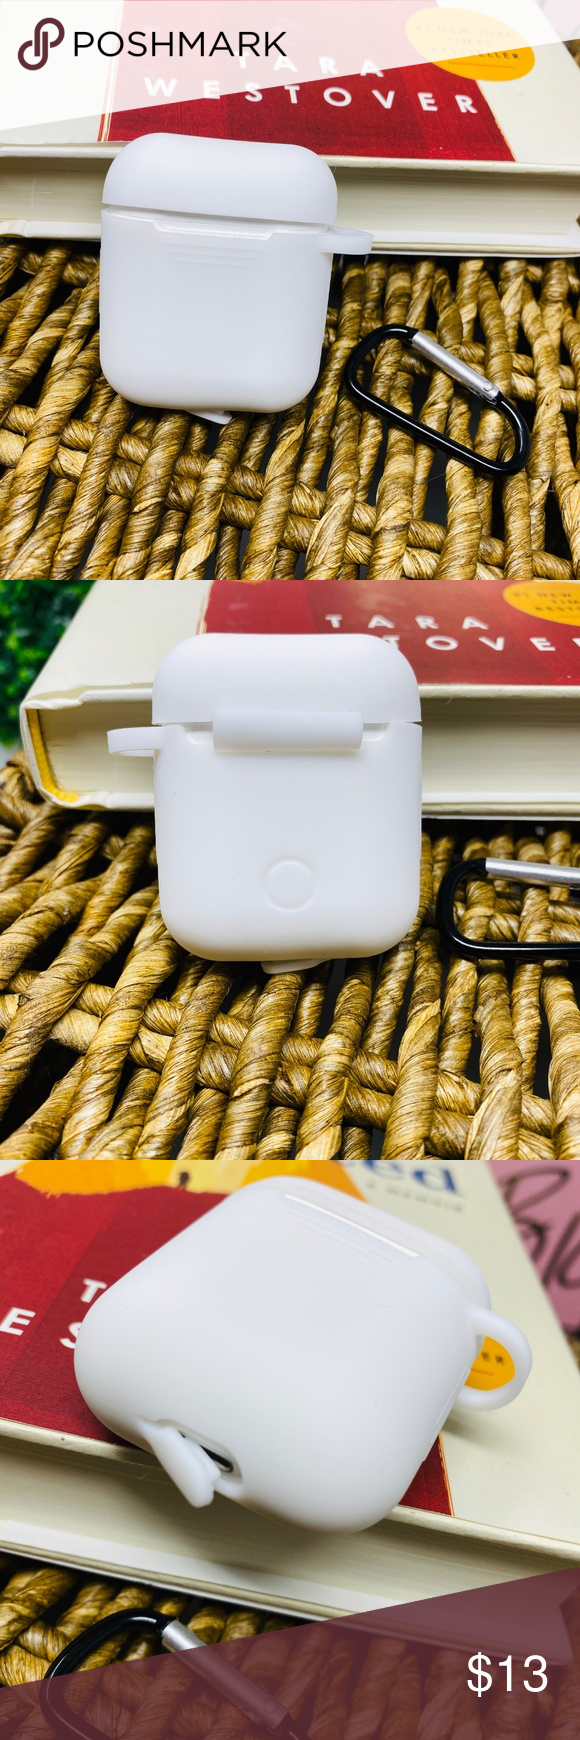 Airpods Case Solid White Case Solid White Phone Case Accessories Keyrings